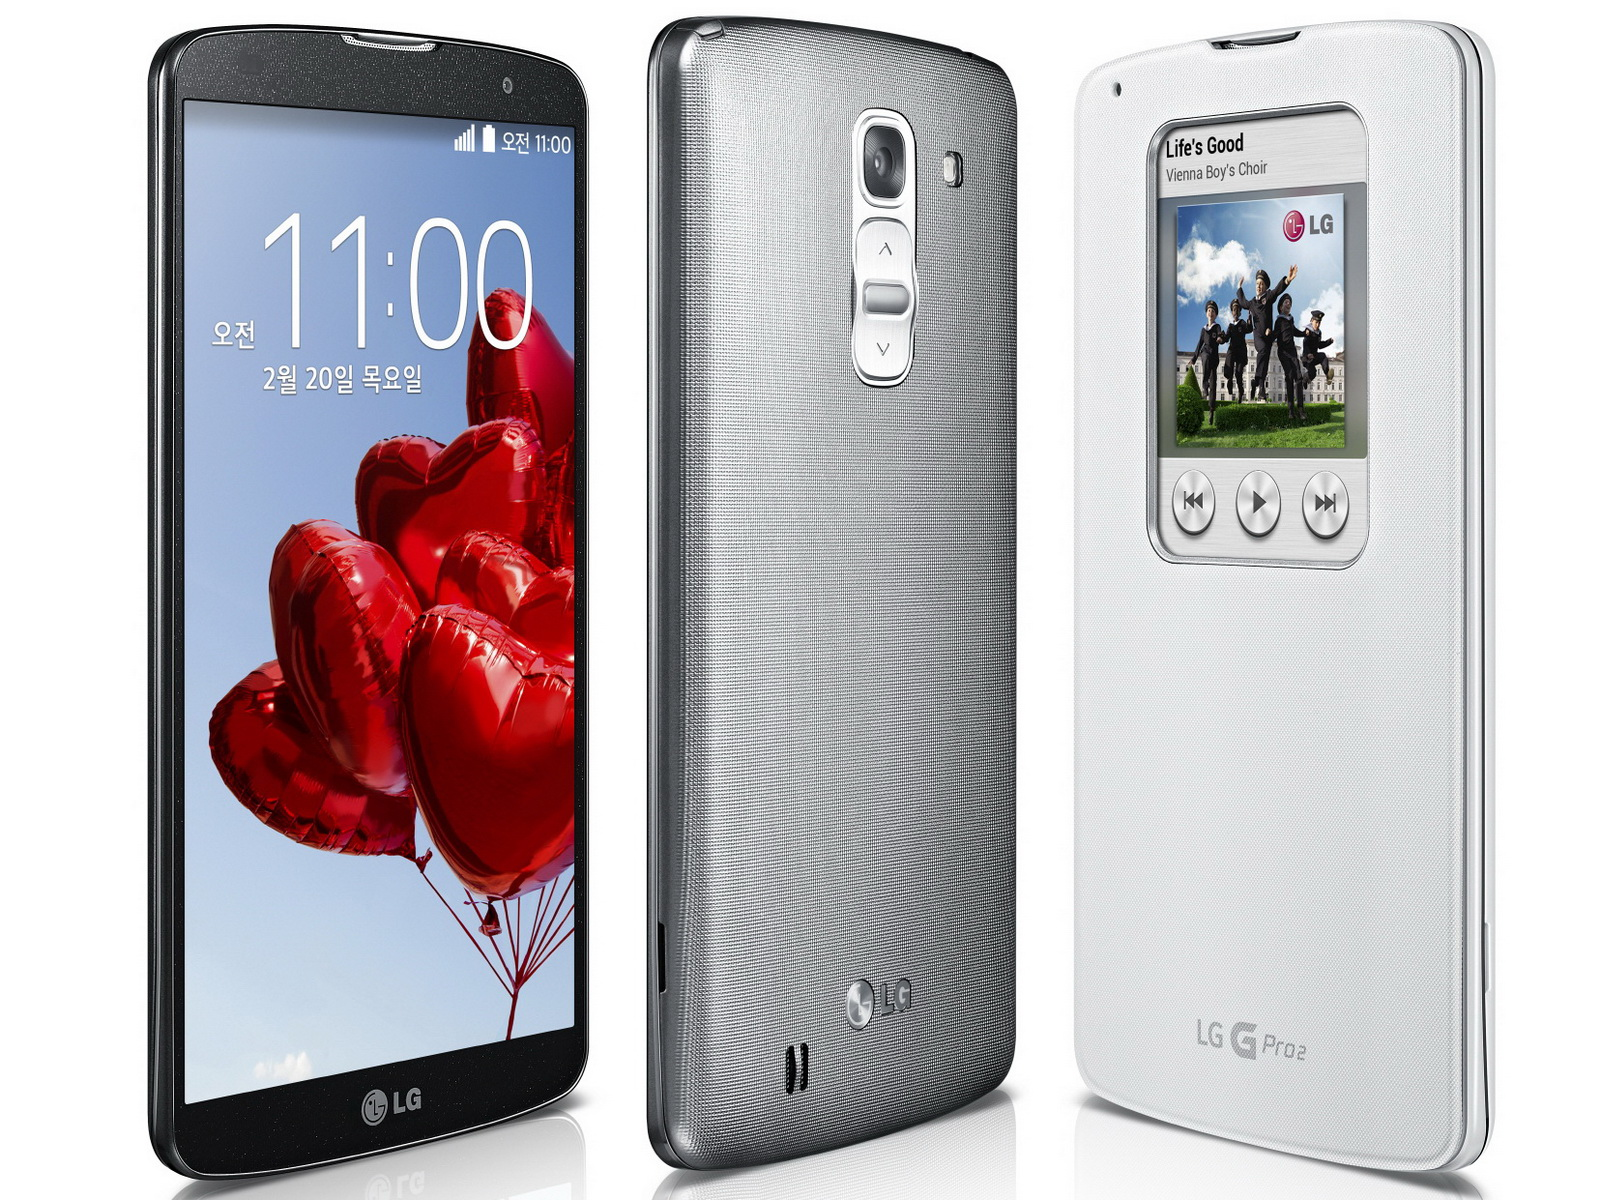 lg smartphone flaggschiff lg g pro 2 vorgestellt news. Black Bedroom Furniture Sets. Home Design Ideas